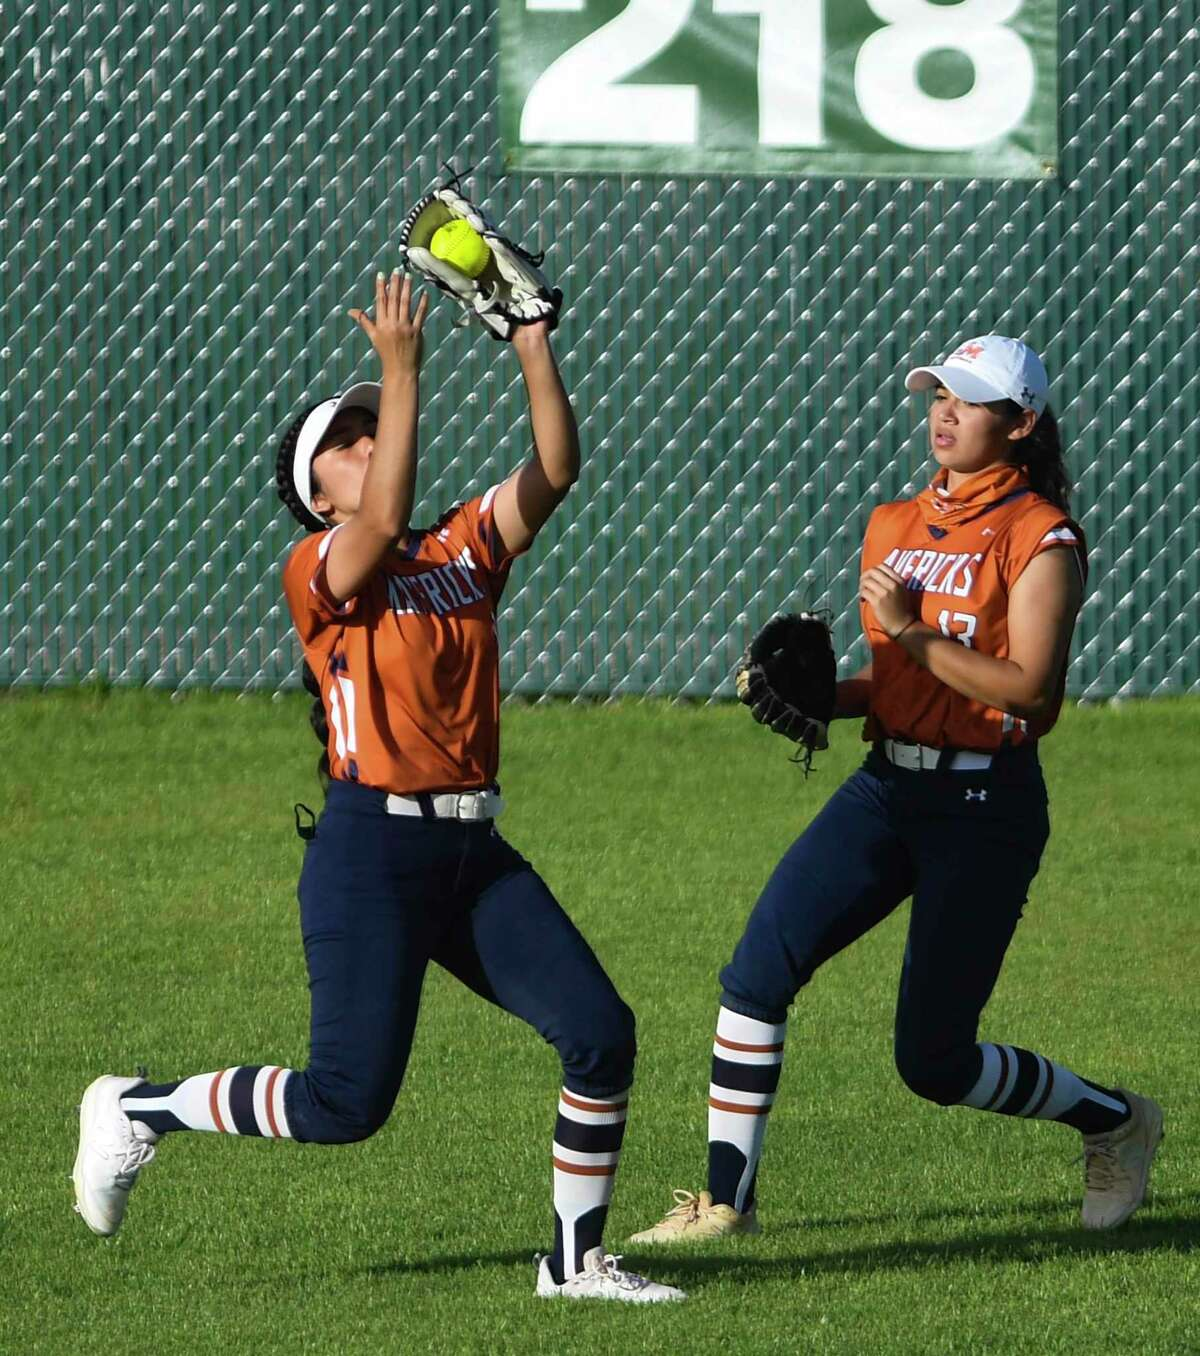 Madison centerfielder Samantha Ytuarte catches a long fly ball as Vejeigh Zamora looks on during softball action against Brandeis at the Northside Athletic Complex on Tuesday, March 23, 2021. Brandeis won the game, 9-5.